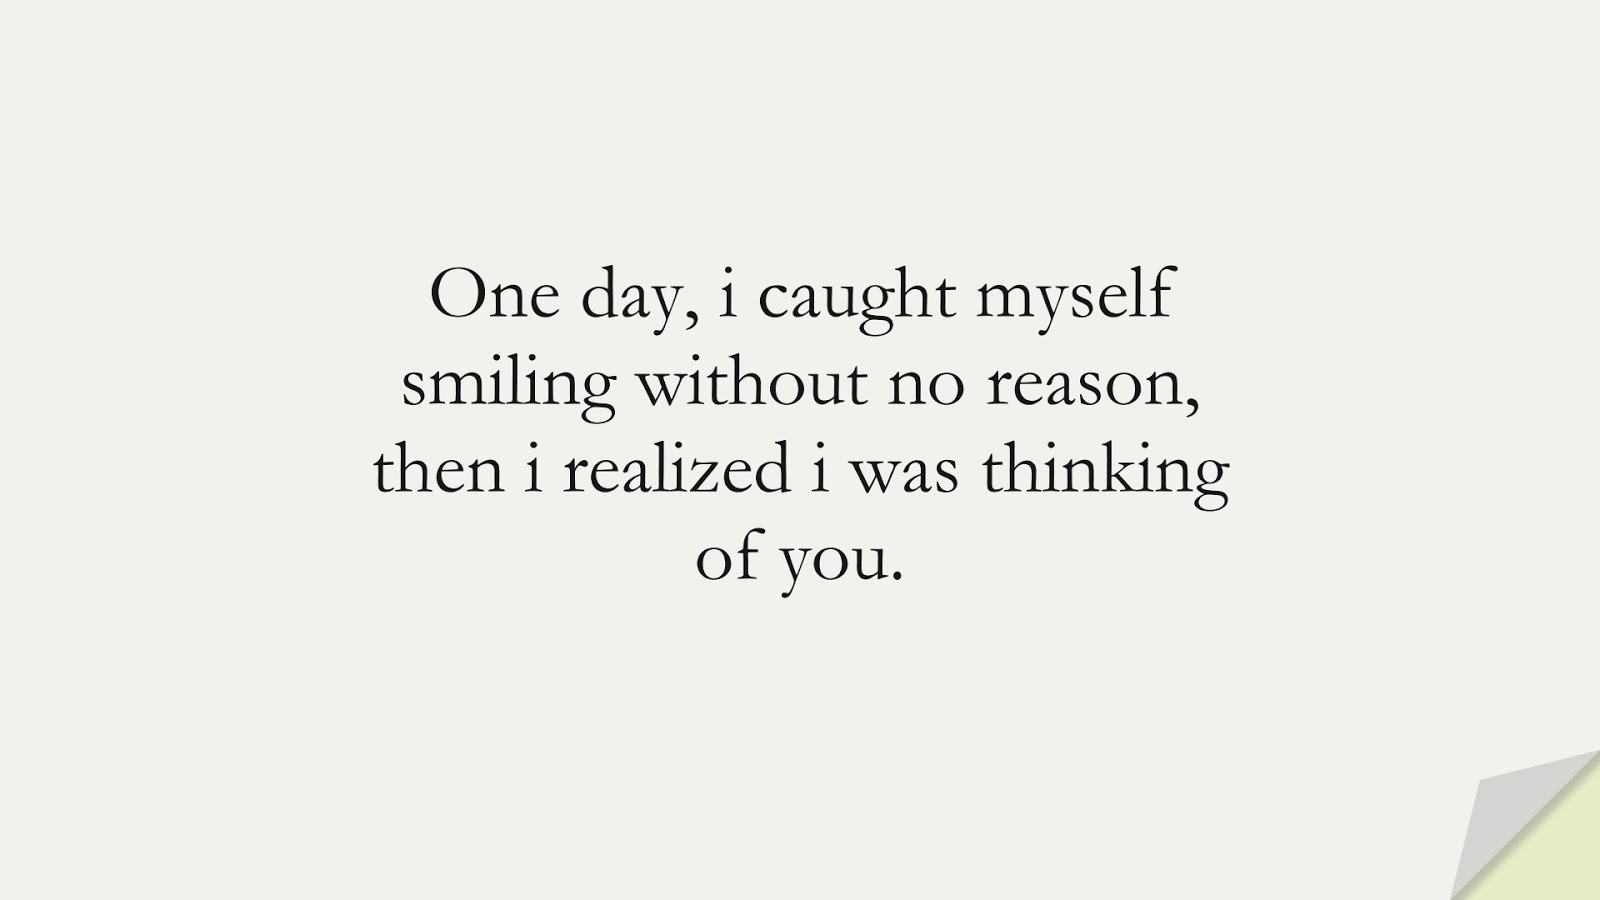 One day, i caught myself smiling without no reason, then i realized i was thinking of you.FALSE